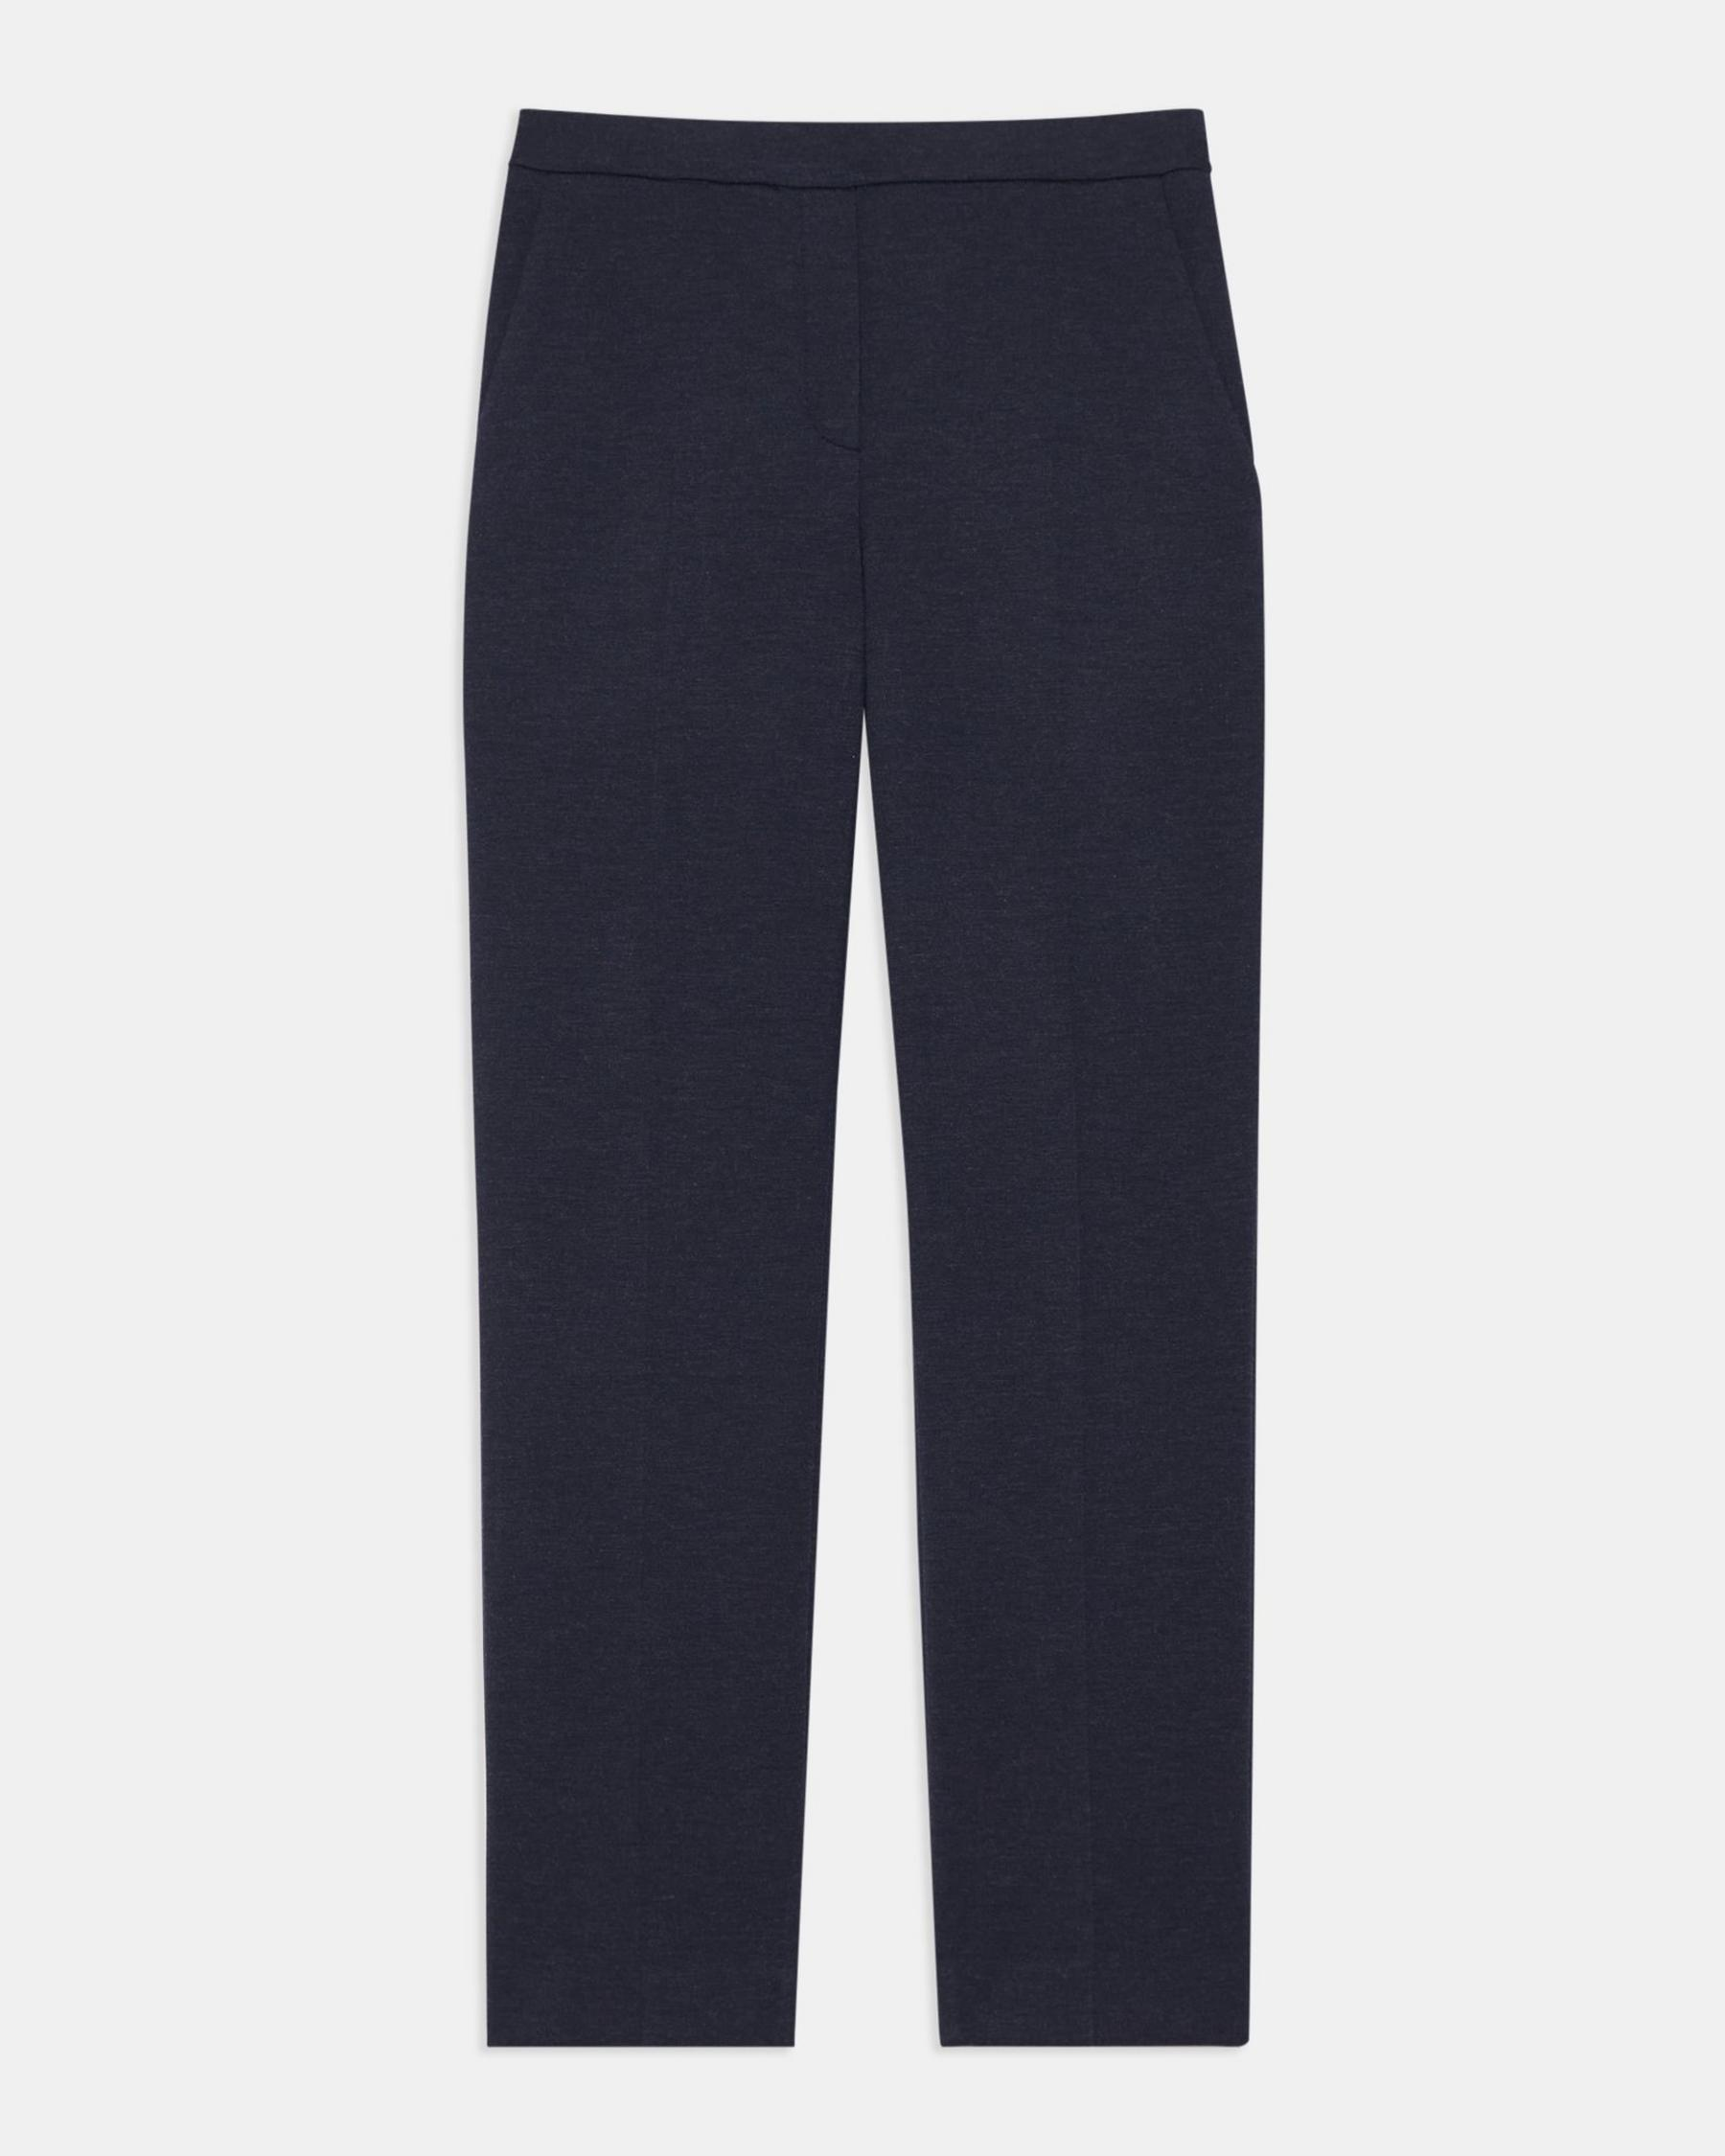 Treeca Pull-On Pant in Double-Knit Jersey 4